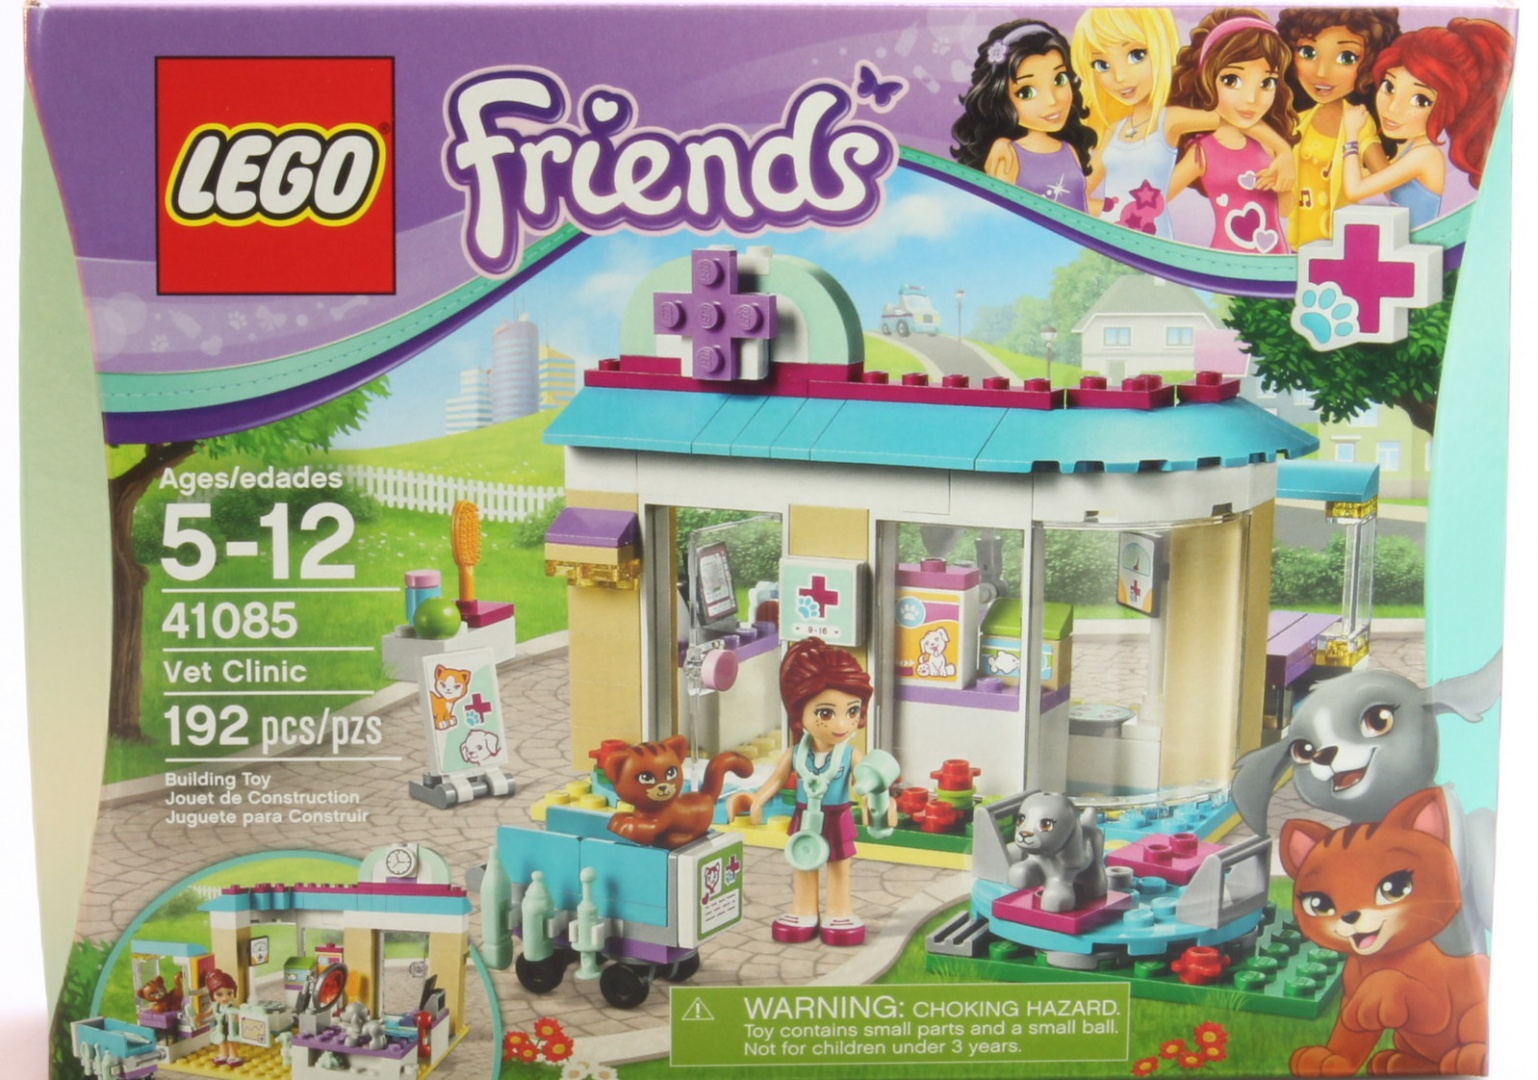 Lego Friends 41085 Vet Clinic By Lego Shop Online For Baby In